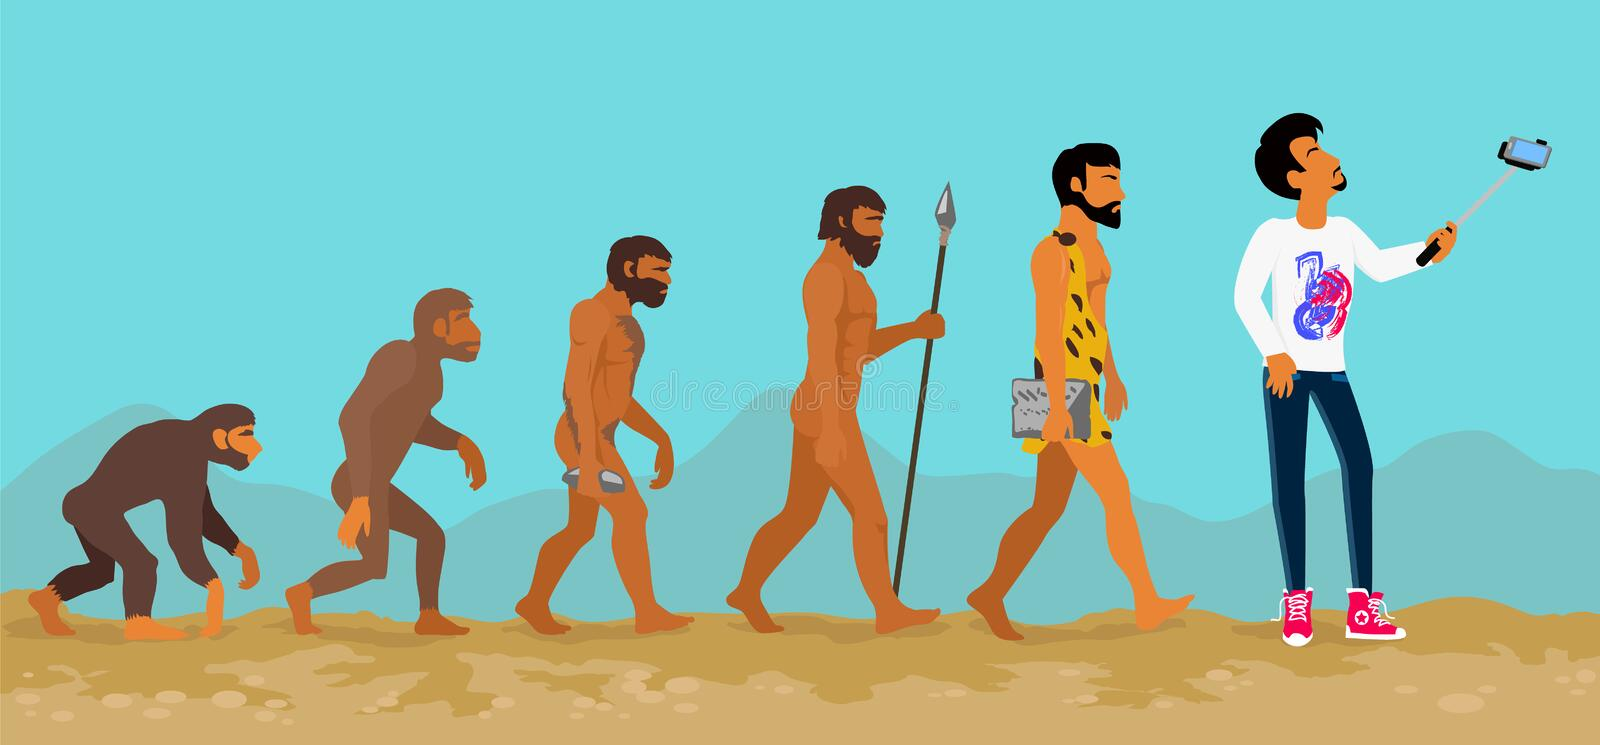 Concept of Human Evolution from Ape to Man stock illustration